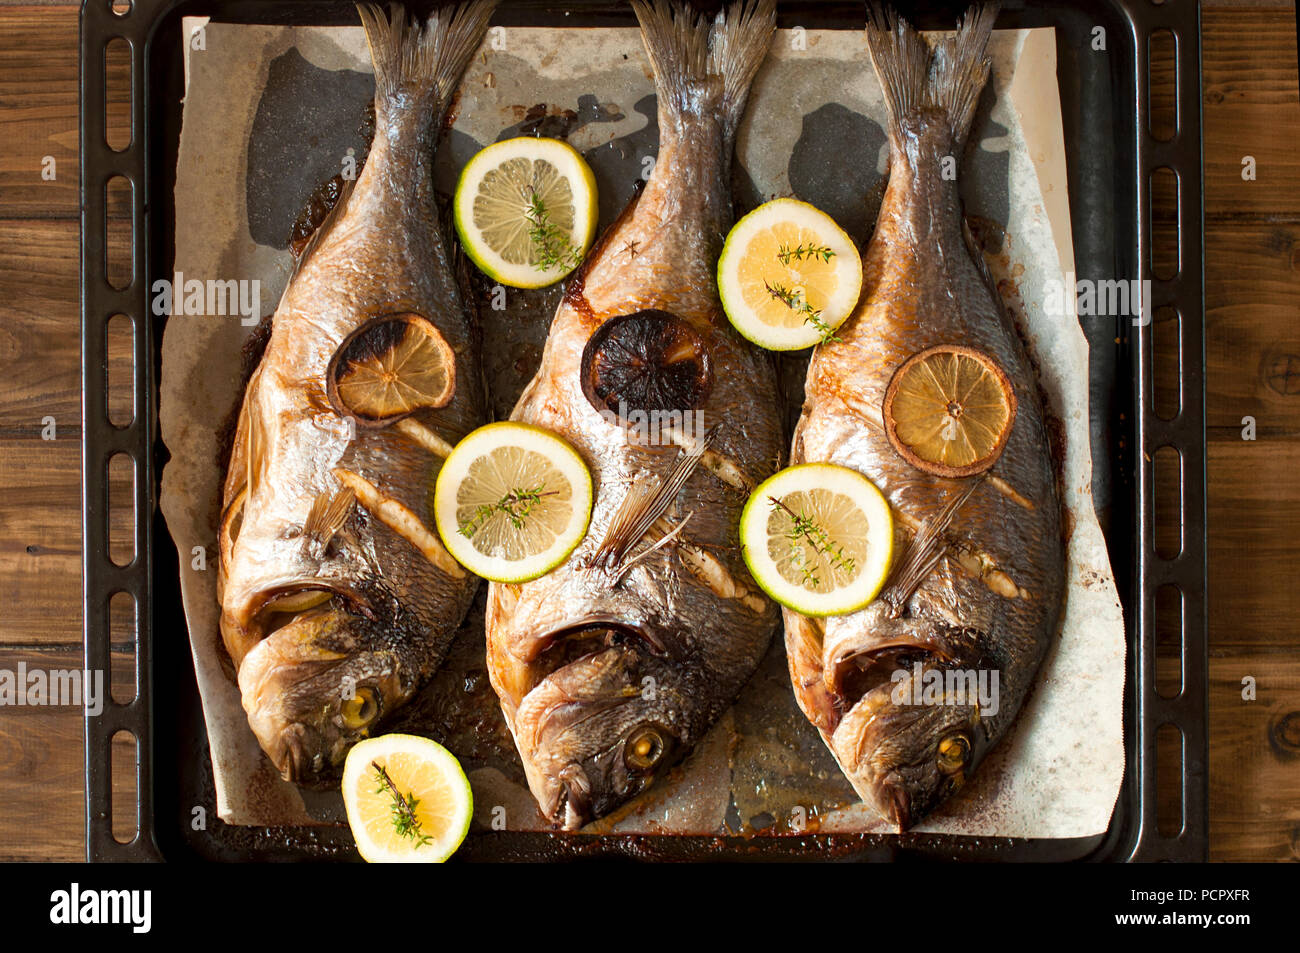 Fish dorada on a frying pan. Eating a healthy diet. Top view. - Stock Image